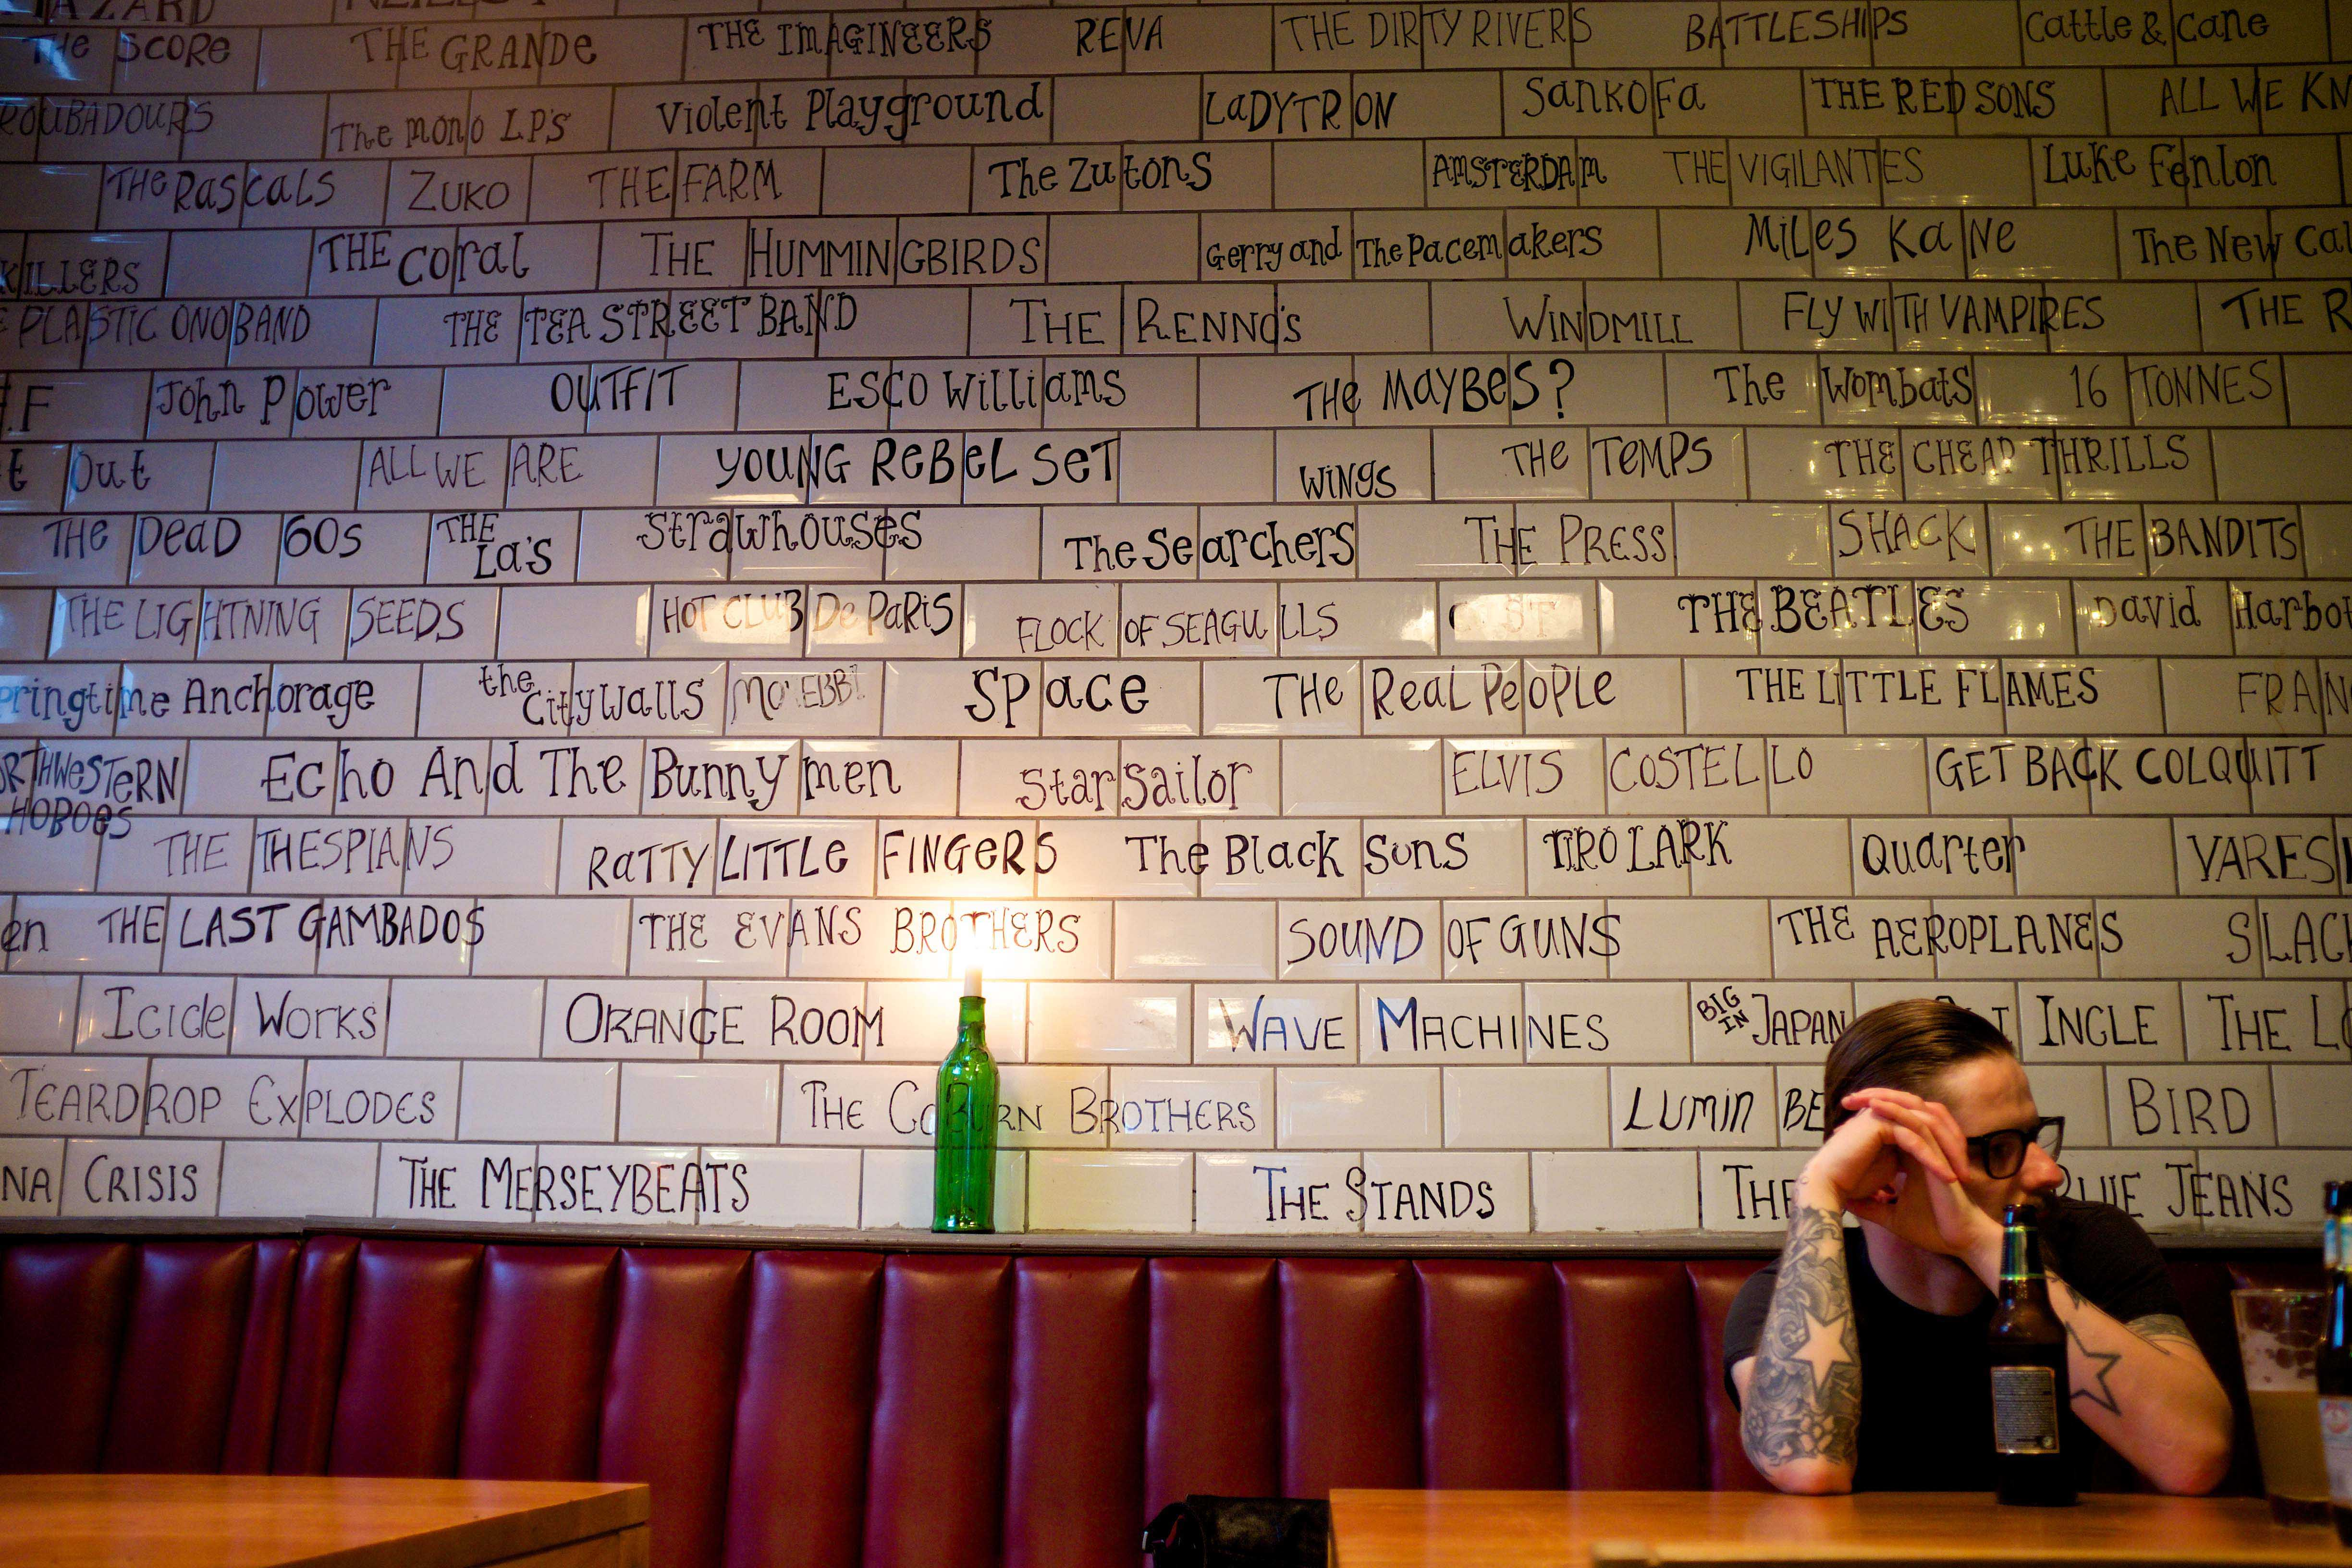 Pubs and Bars of Liverpool